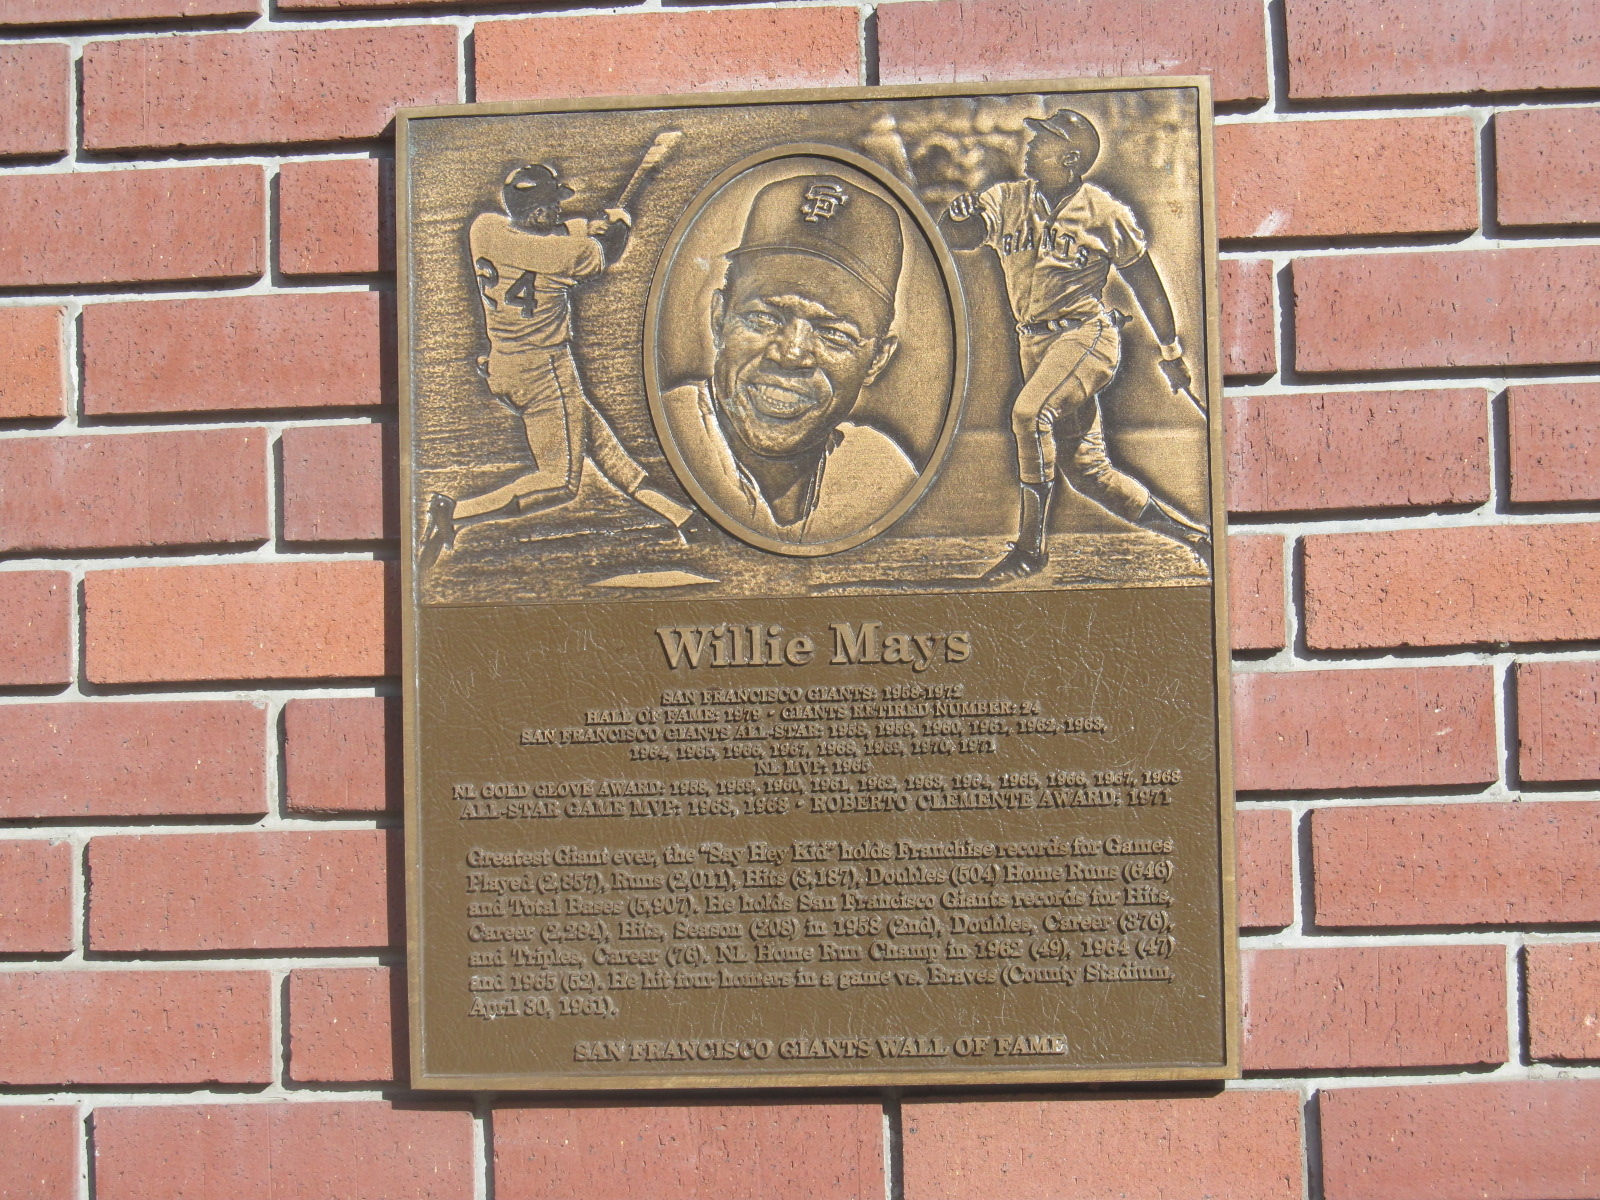 Willie Mays Plaque on the AT&T Park outside wall